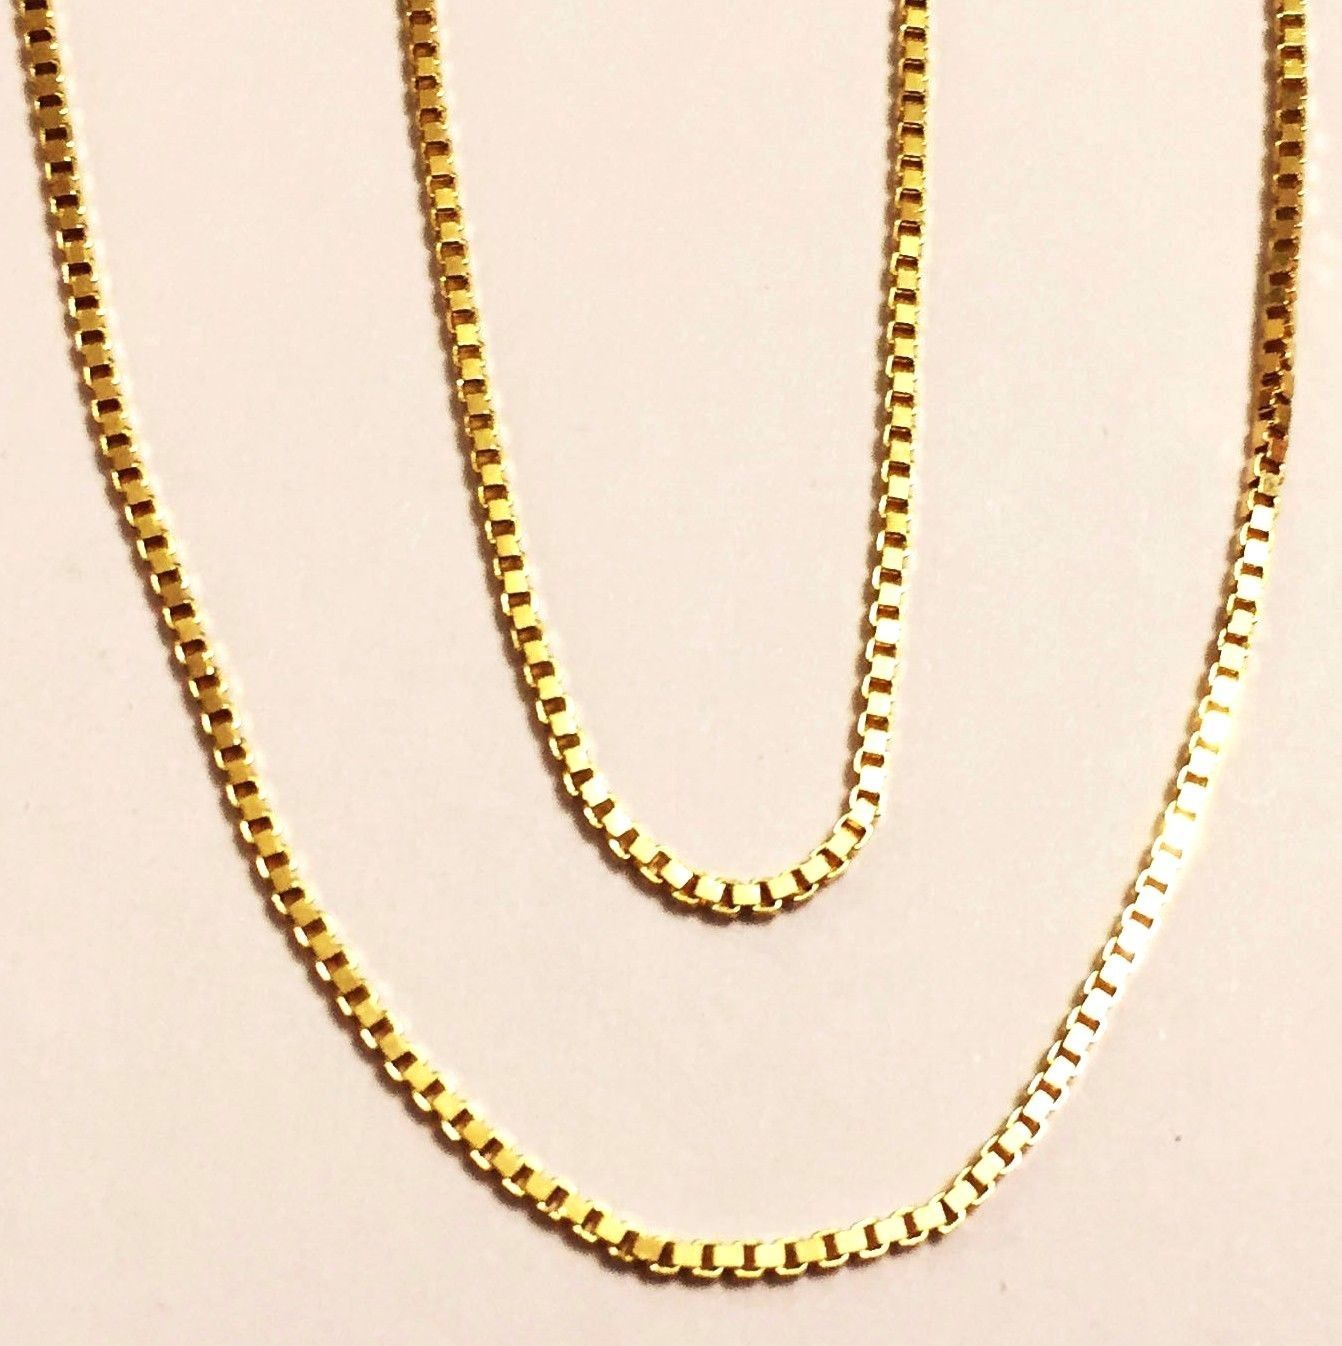 3 Ways To Avoid Buying Fake Gold Chains Chains Gold and Gold